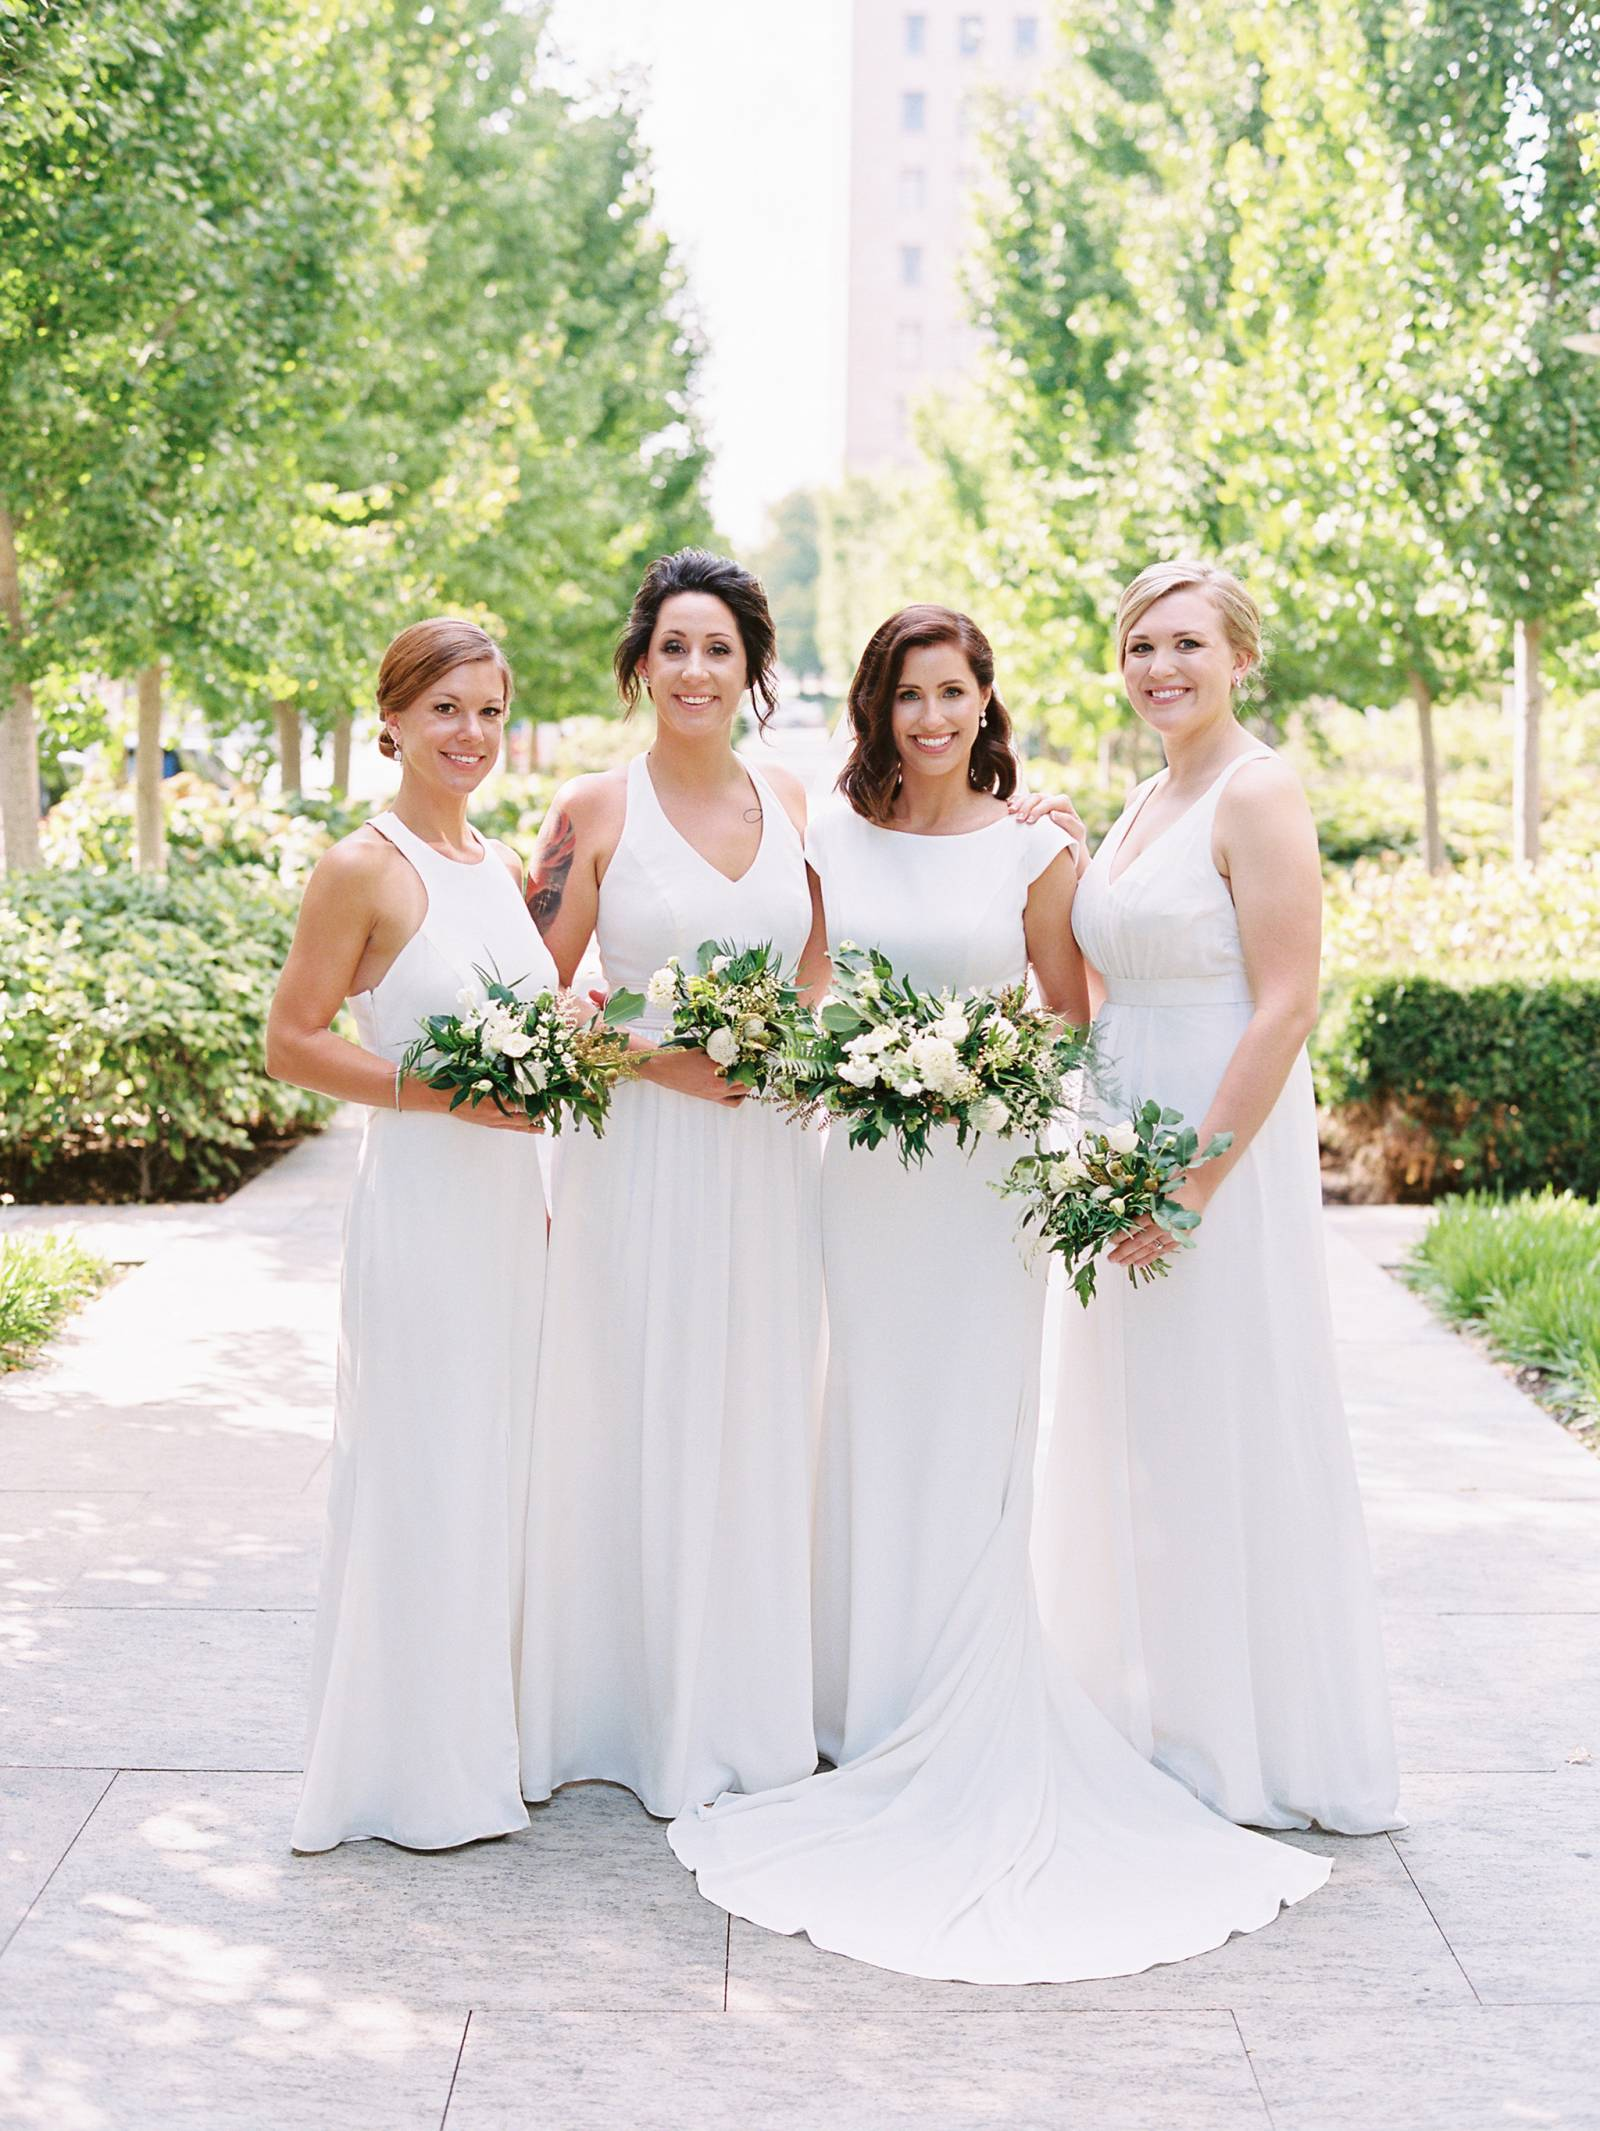 Modern minimalist wedding in st louis missouri missouri real how did you meet jeremy and i met during college we had mutual friends that decided to meet up and play a pick up game of baseball and while jeremy was a m4hsunfo